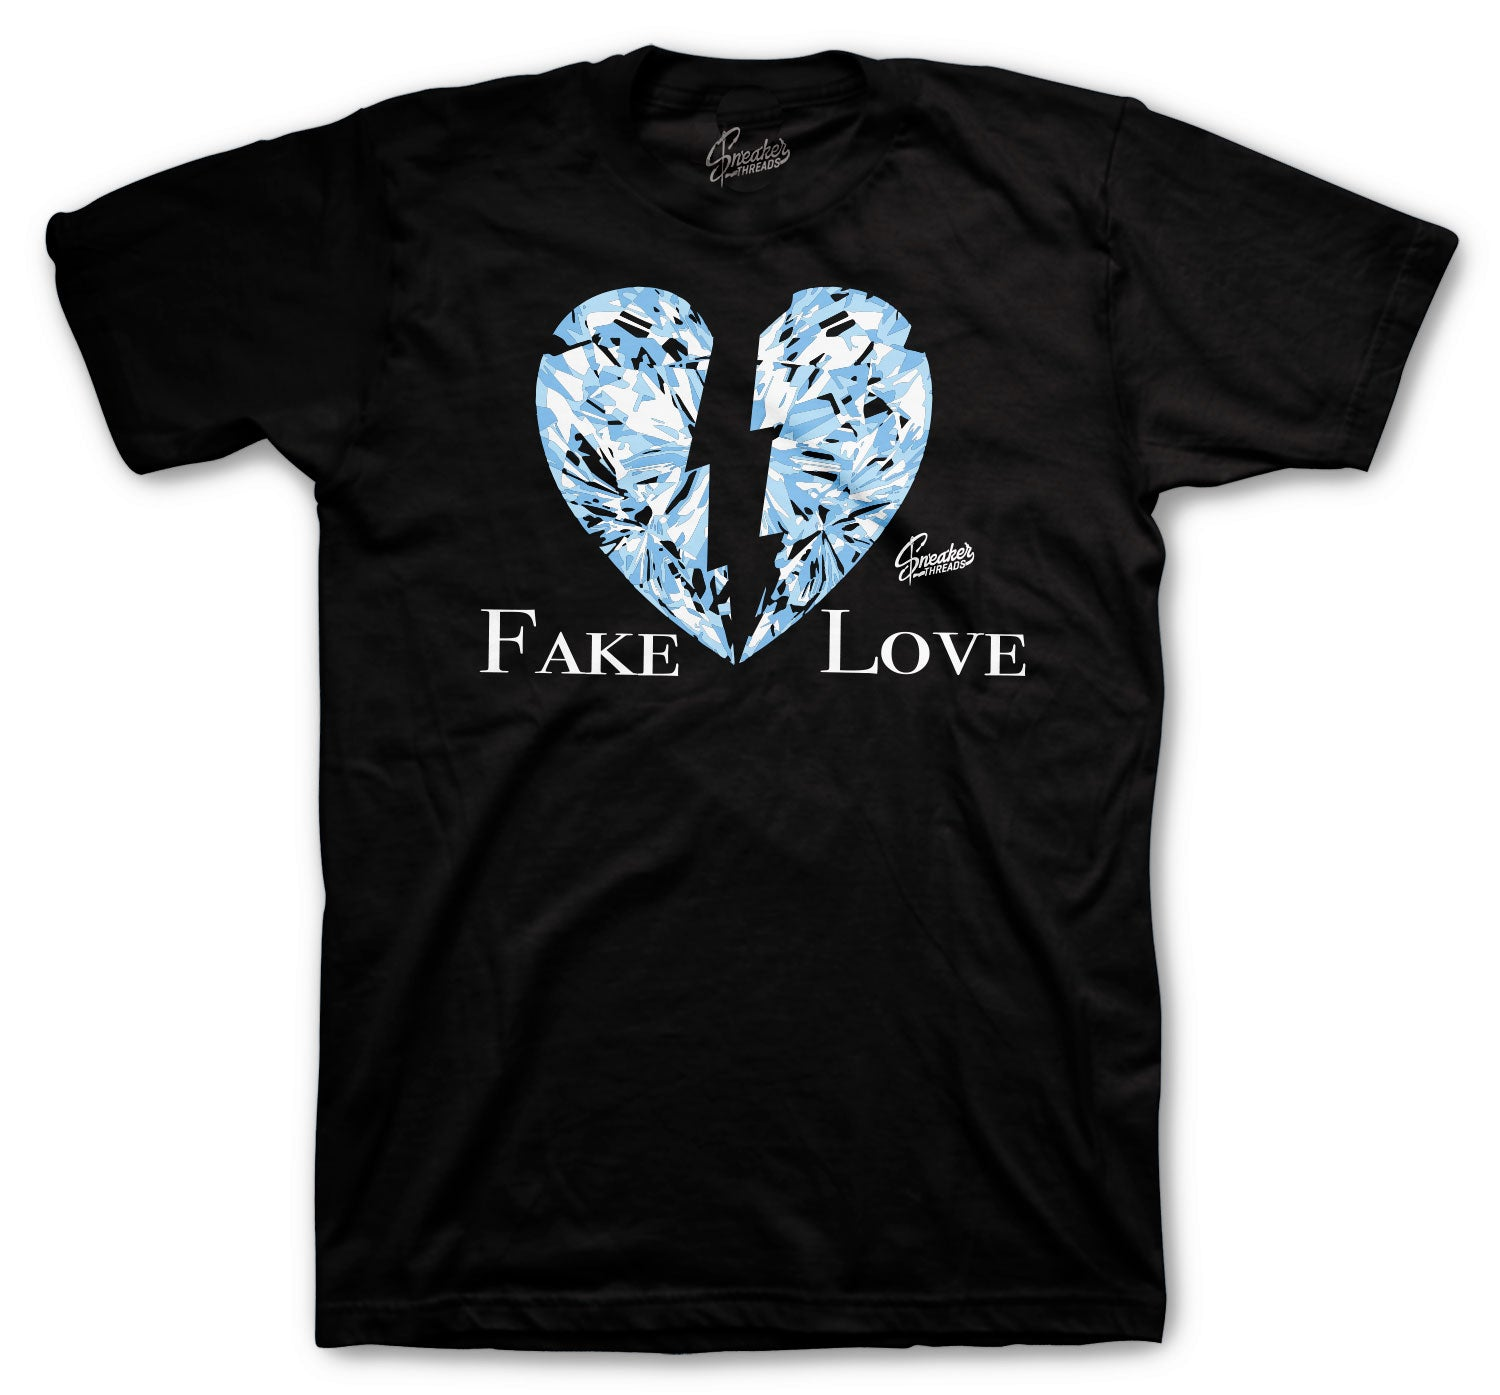 Jordan 1 Uni Blue Shirt - Fake Love - Black